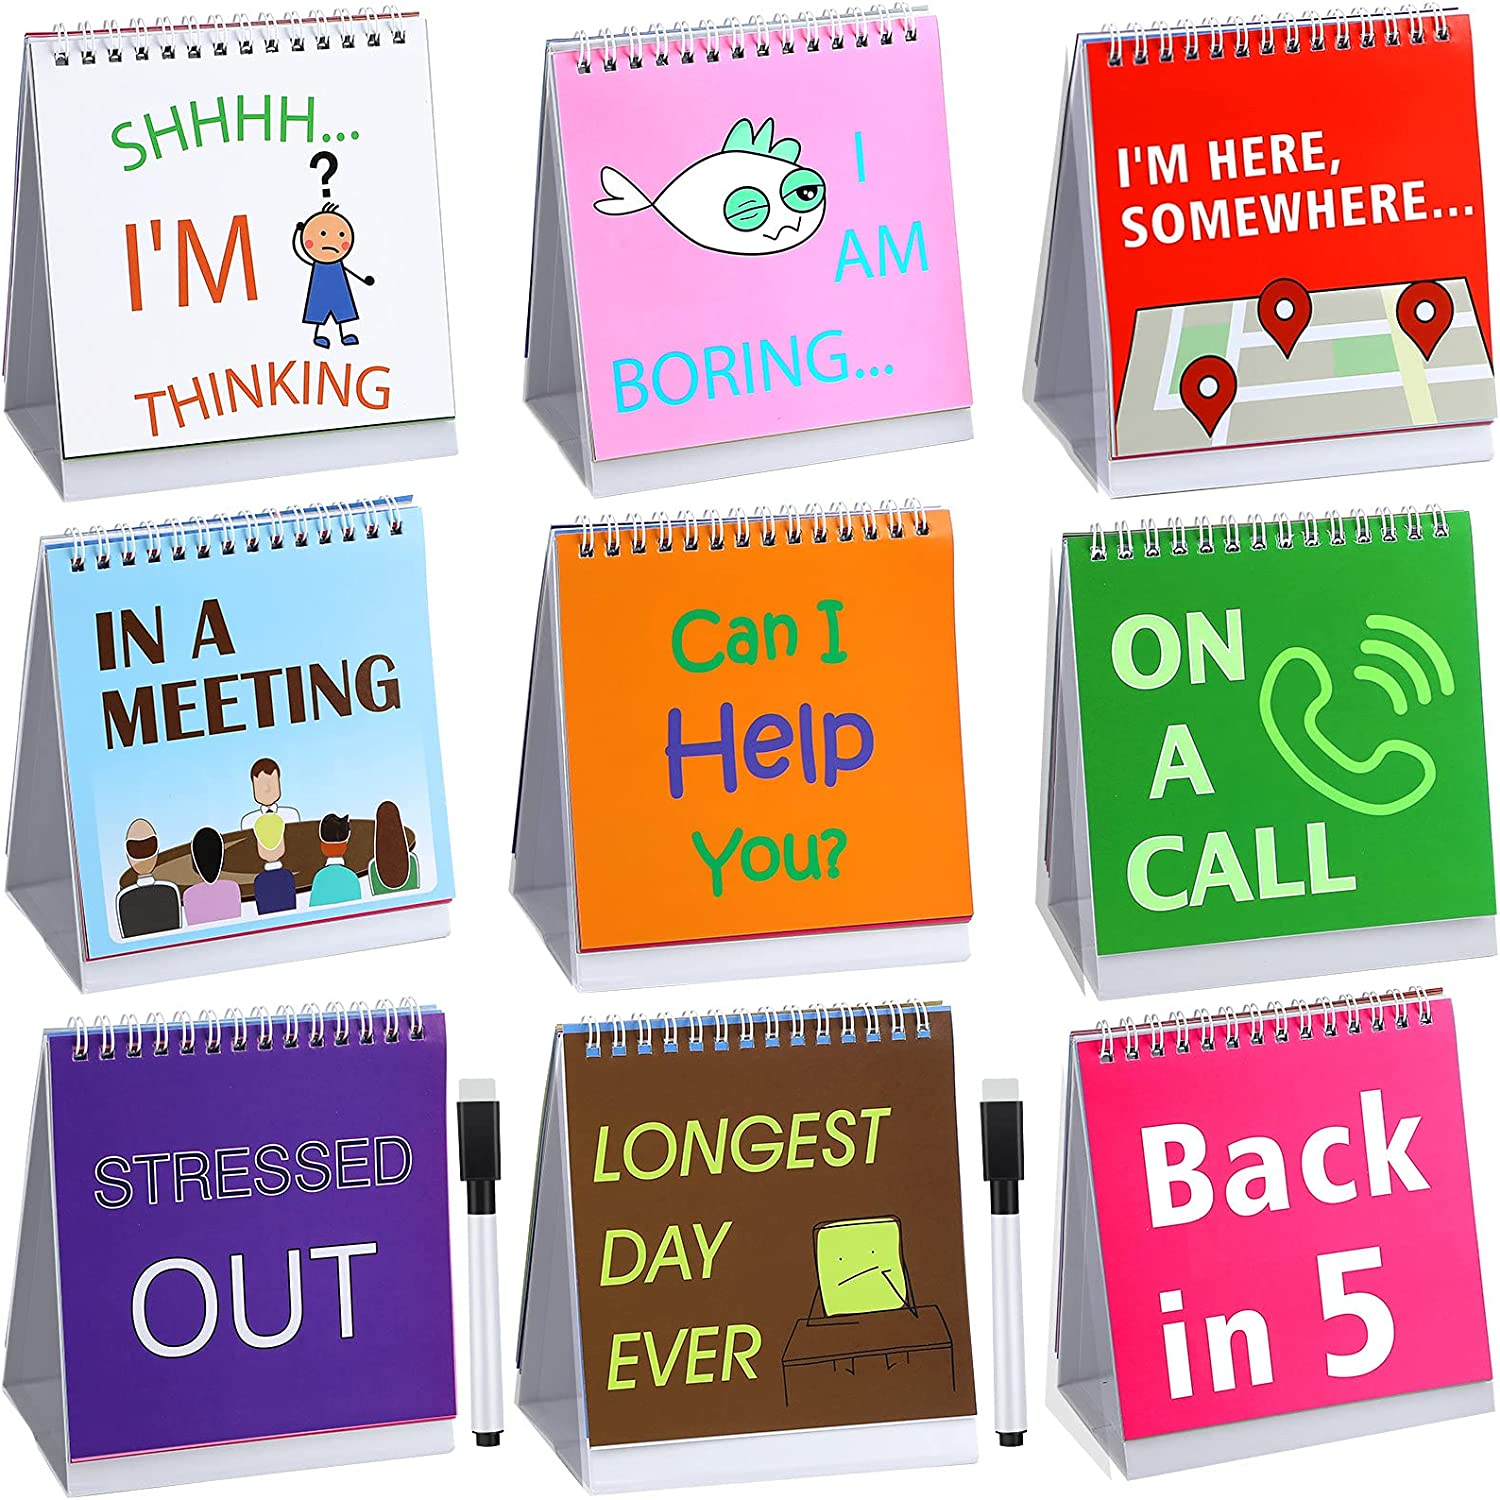 2 Pieces Funny Desk Office Signs Funny Picture 30 Different Fun and Flip-Over Messages Calendar and 2 Pieces Black Pens Funny Desk Accessories for Work Business Office Gifts Desk Cubicle Accessories